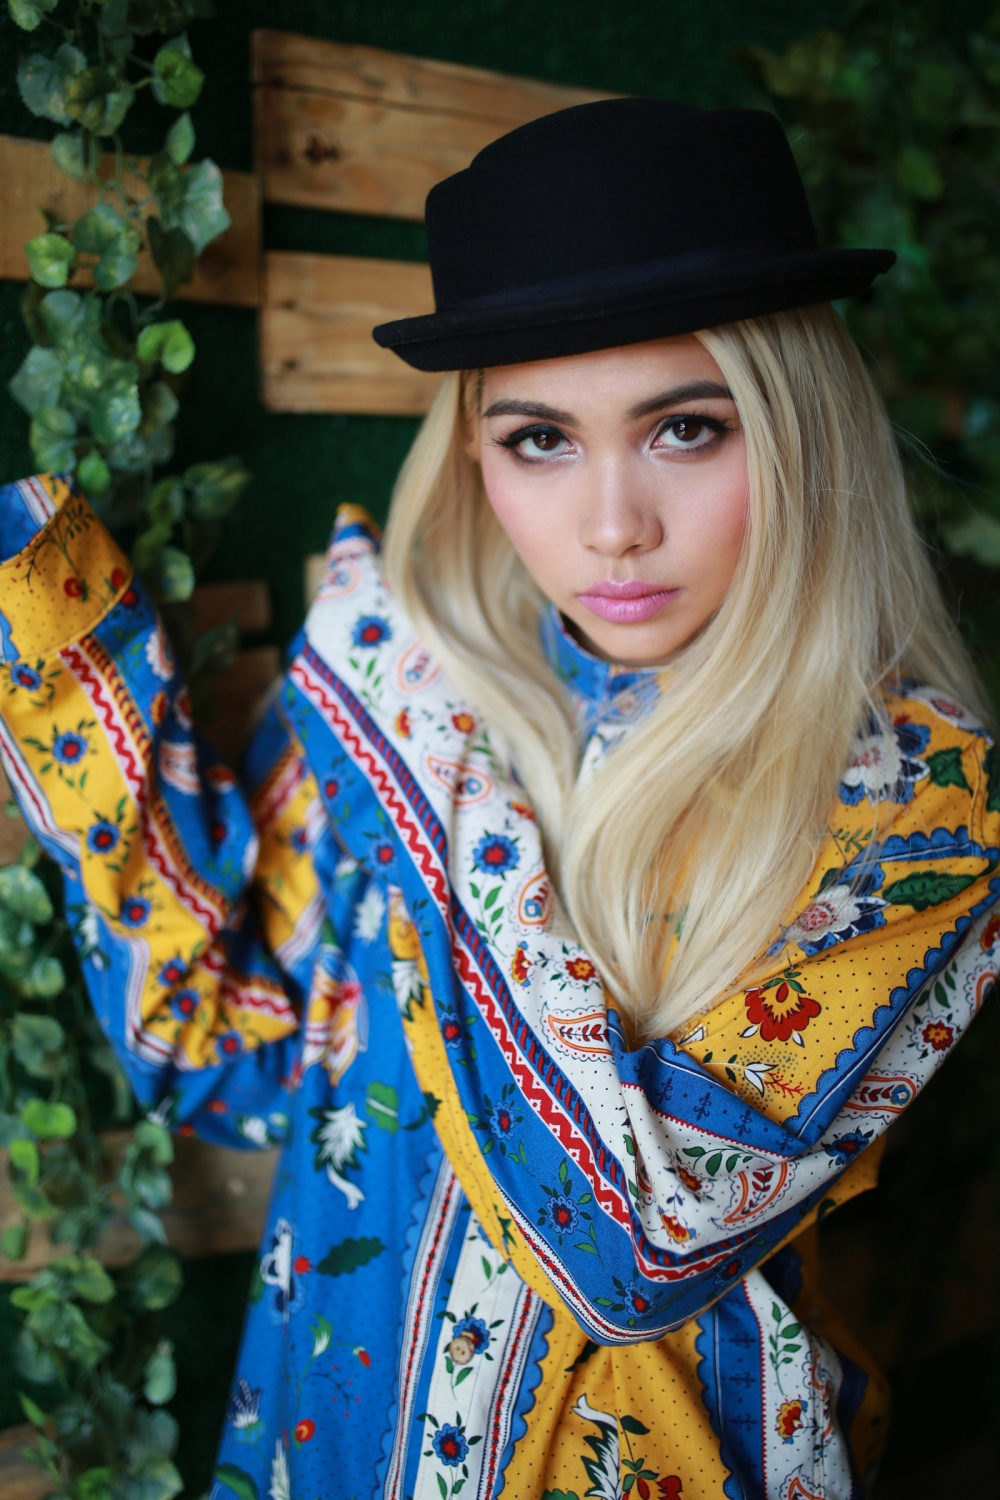 14m Followers 389 Following 2645 Posts See Instagram photos and videos from H A Y L E Y K I Y O K O hayleykiyoko